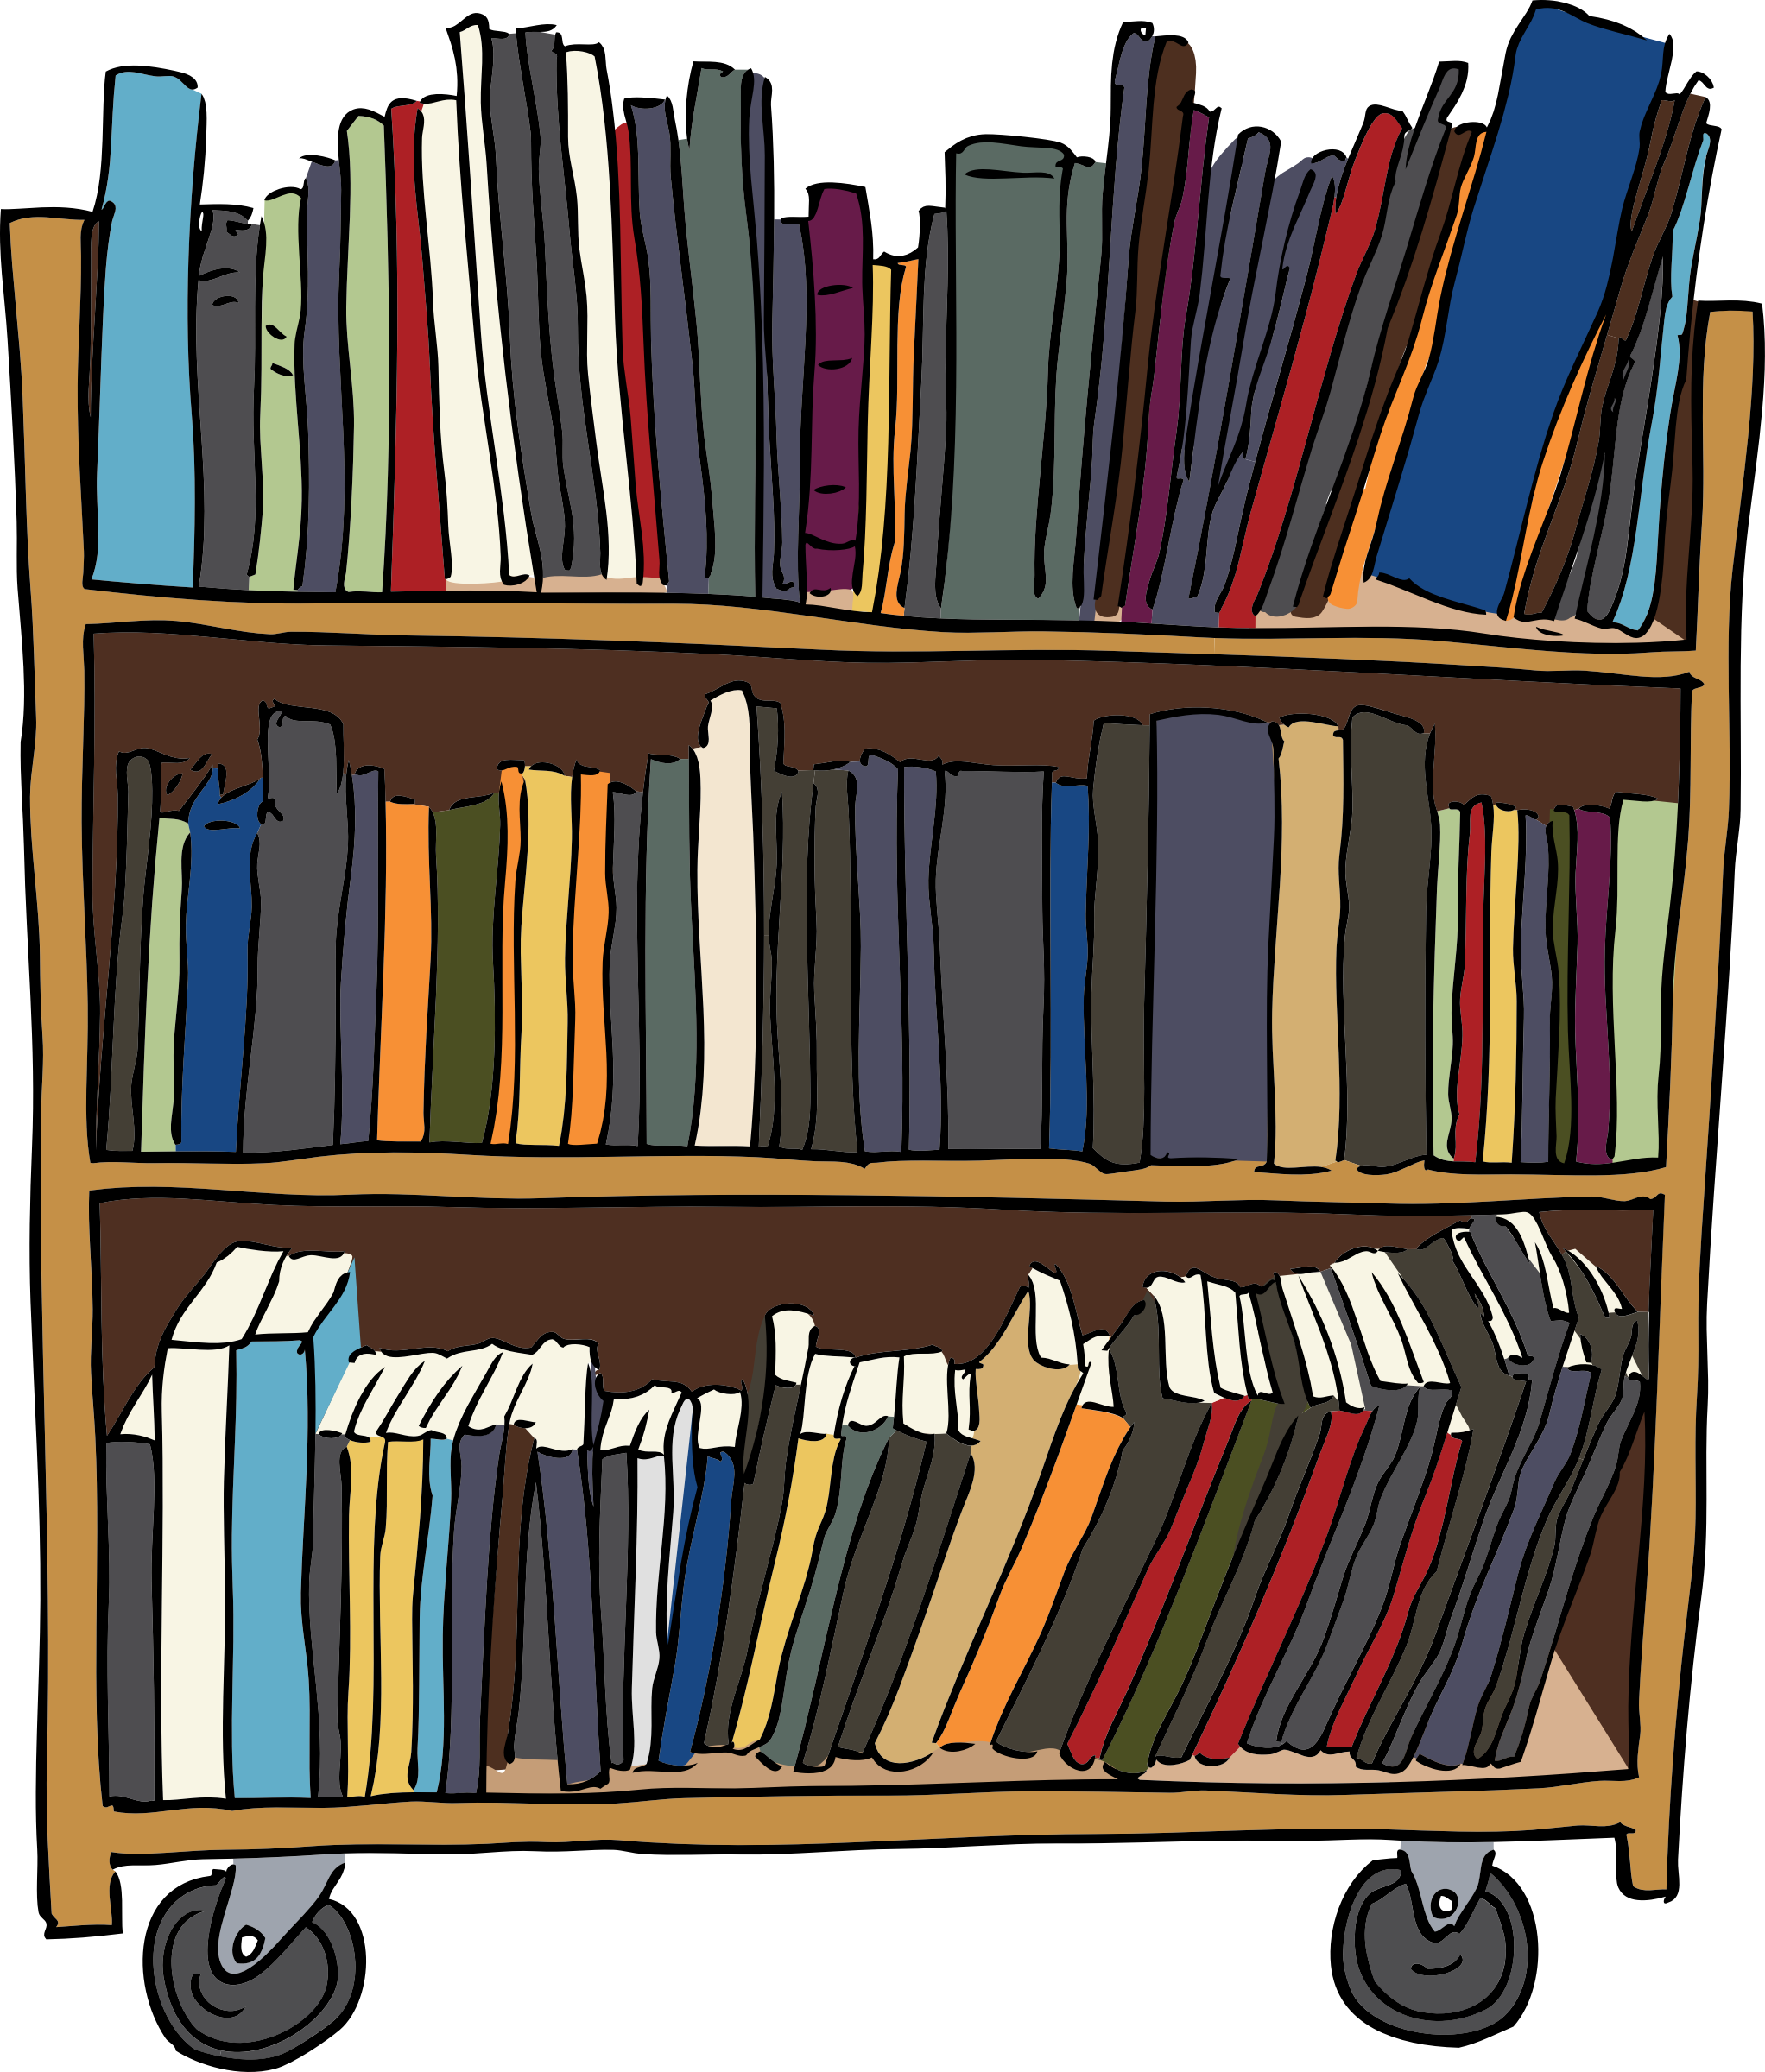 library-order-image-poss-2